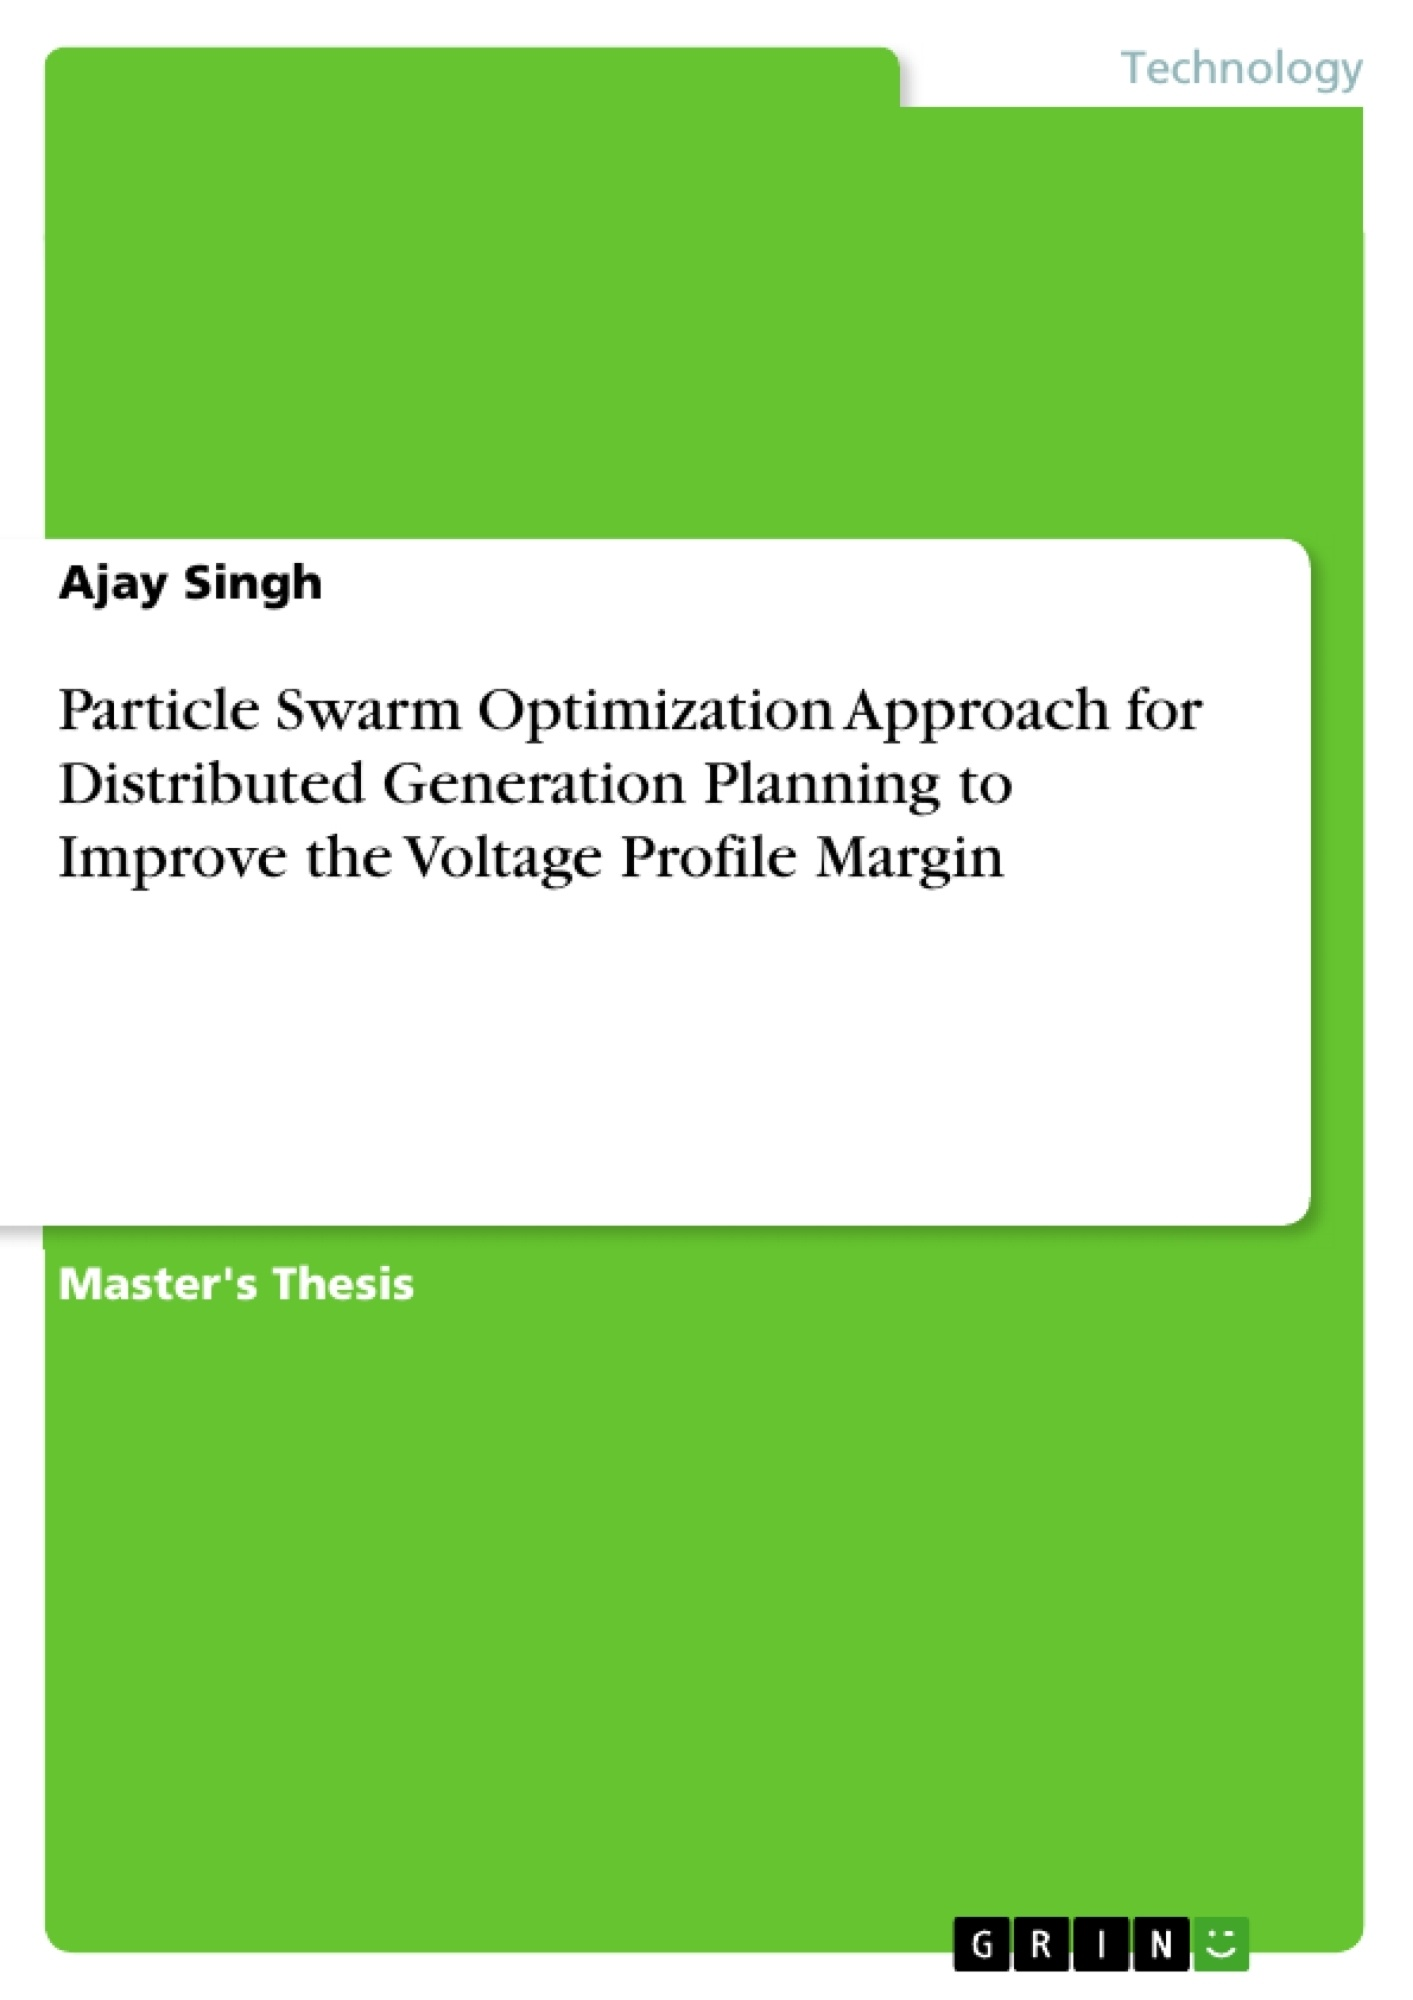 Diplomarbeiten24 de - Particle Swarm Optimization Approach for Distributed  Generation Planning to Improve the Voltage Profile Margin